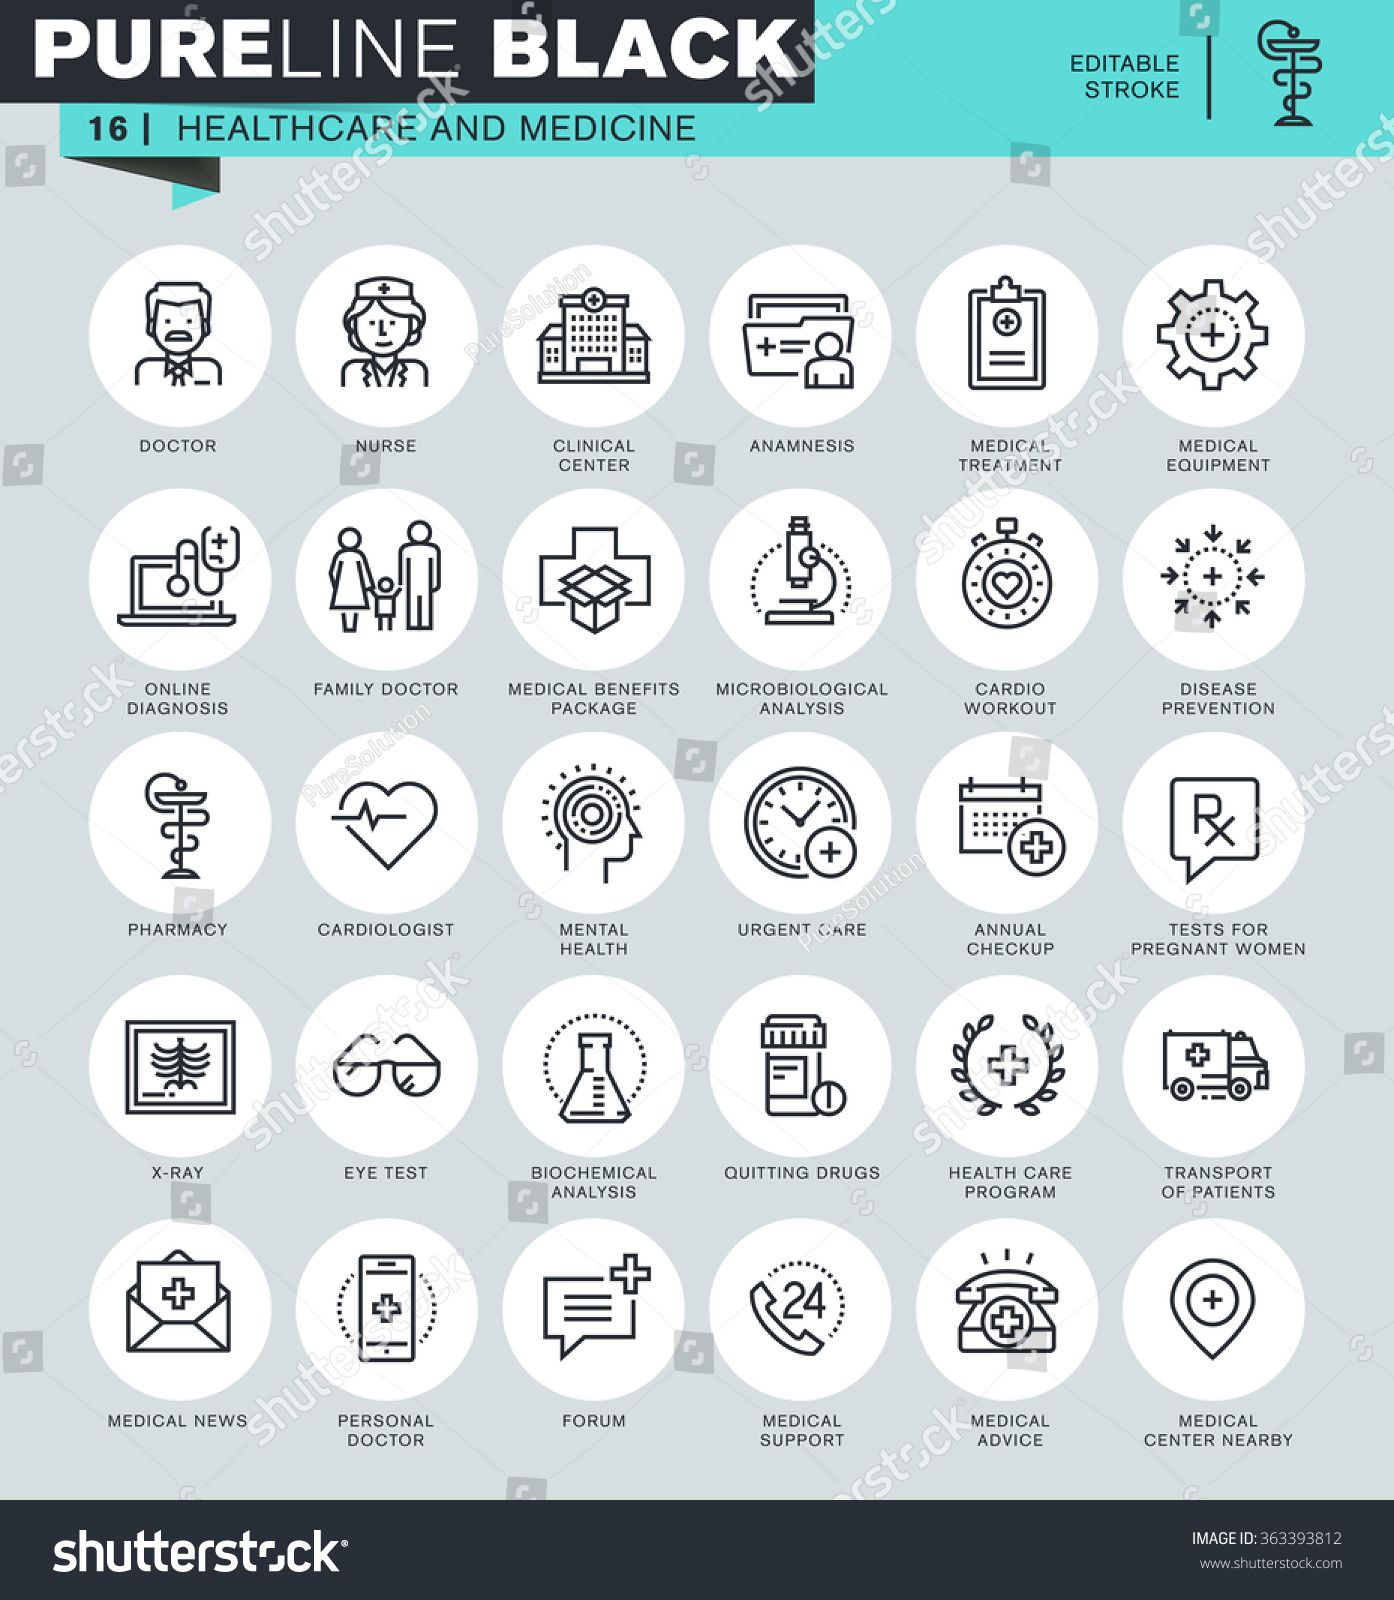 Thin Line Icons Set Of Healthcare And Medicine Hospital Services Laboratory Analyzes Icons For Website And Mobile W Ad Ad Health Care Medicine Line Icon